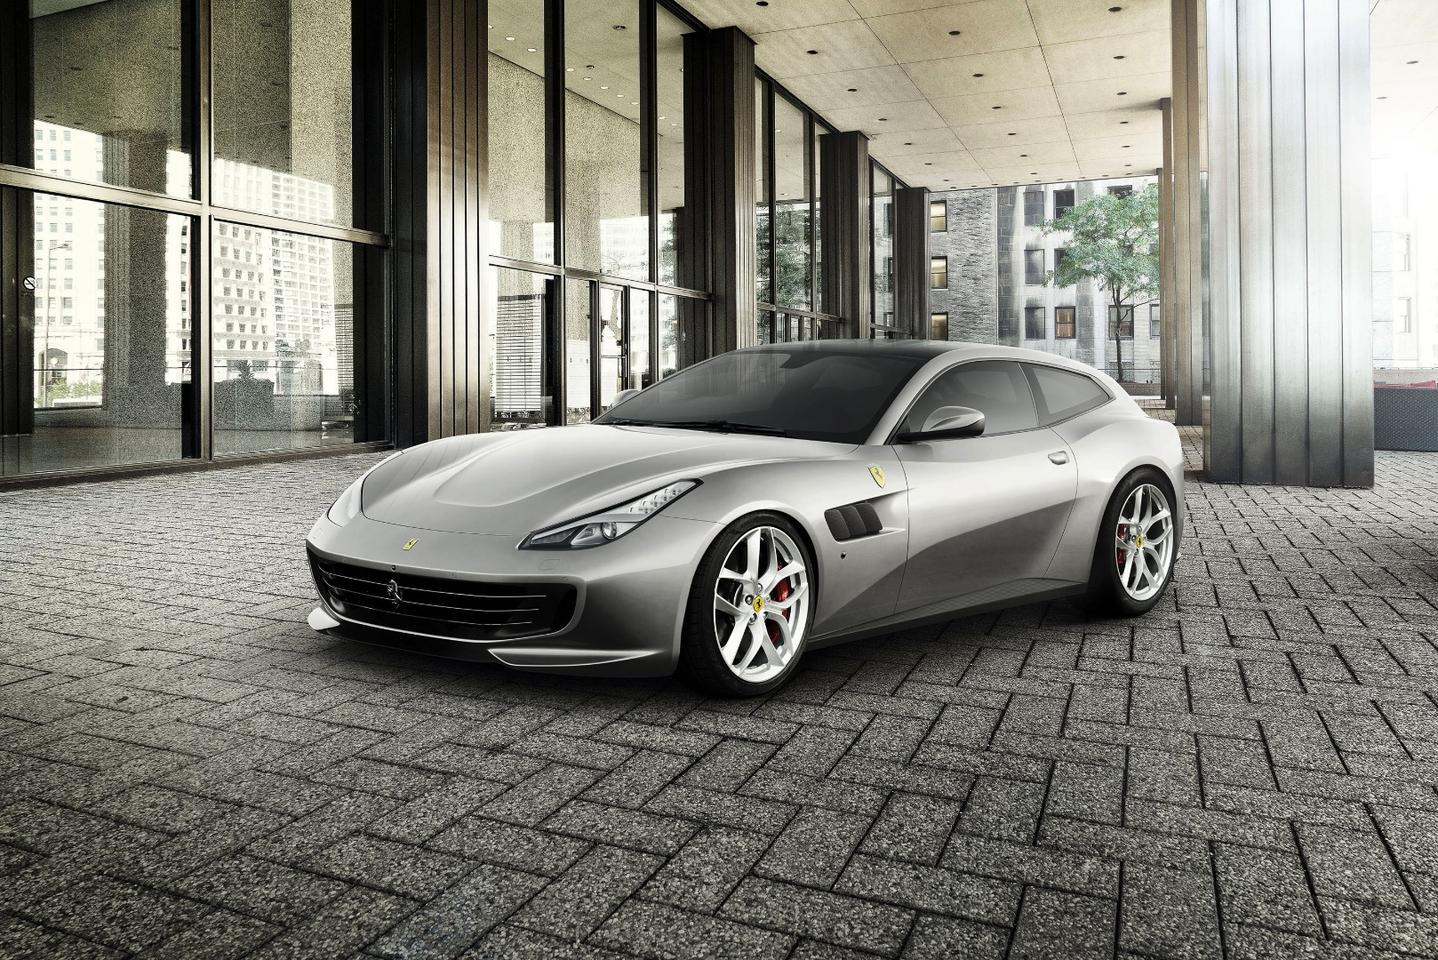 Ferrari introduces the all-new GTC4Lusso as its first four-seater with turbo V8